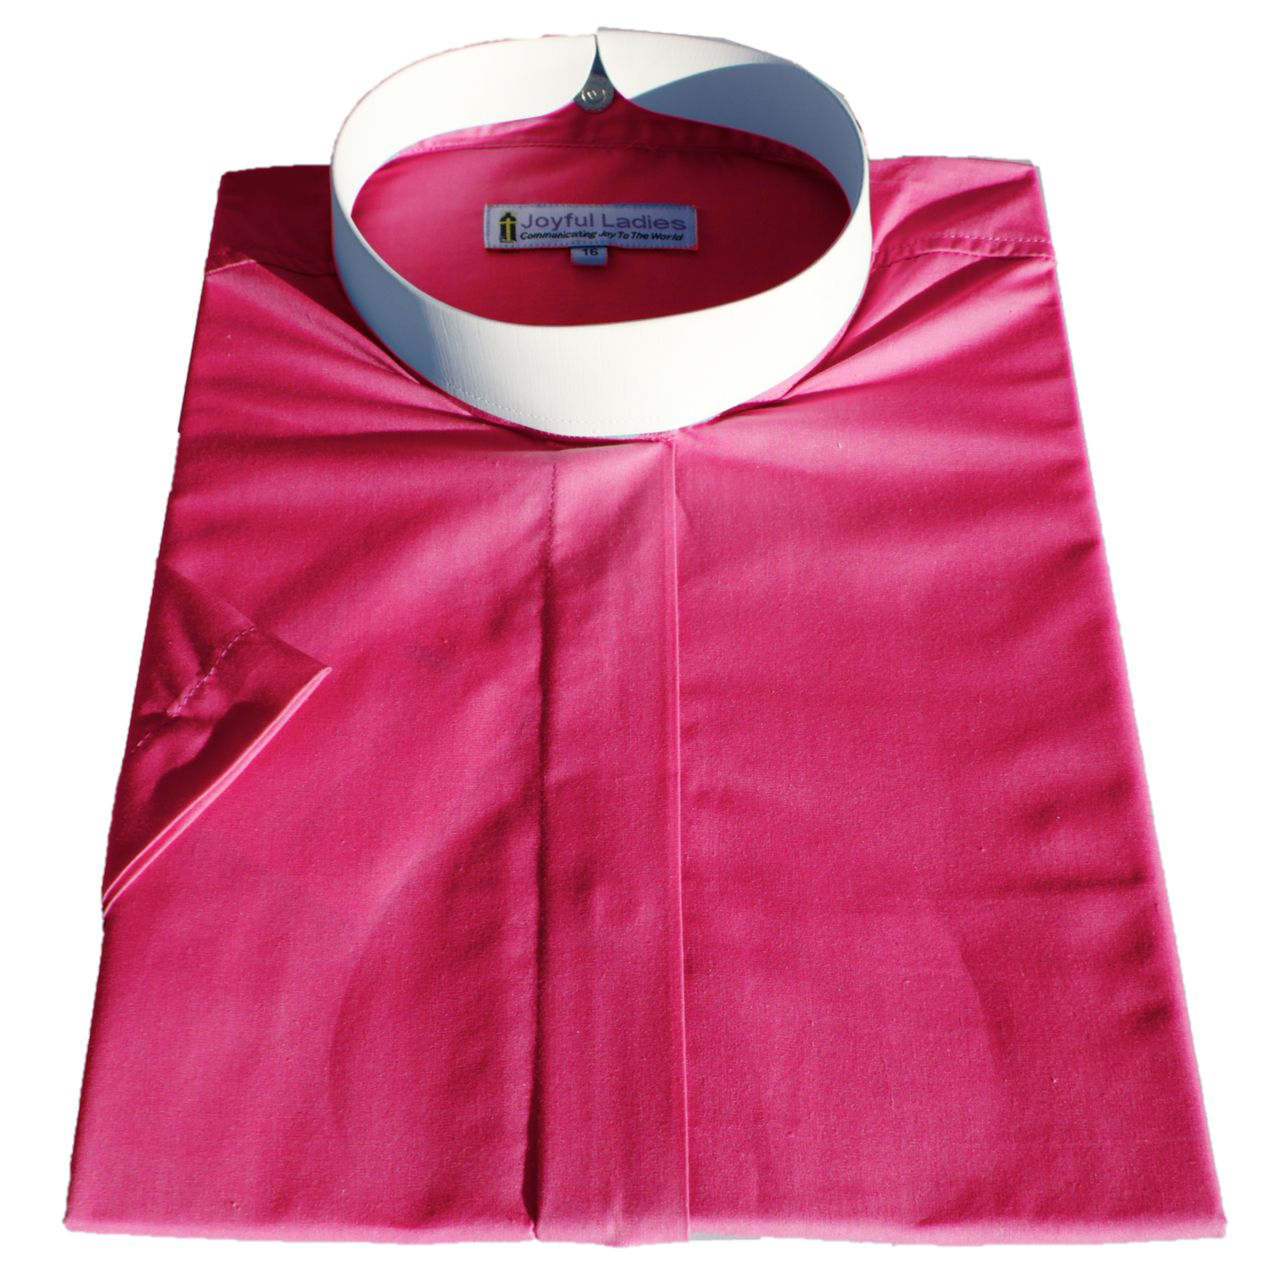 665. Women's Short-Sleeve (Banded) Full-Collar Clergy Shirt - Fuchsia